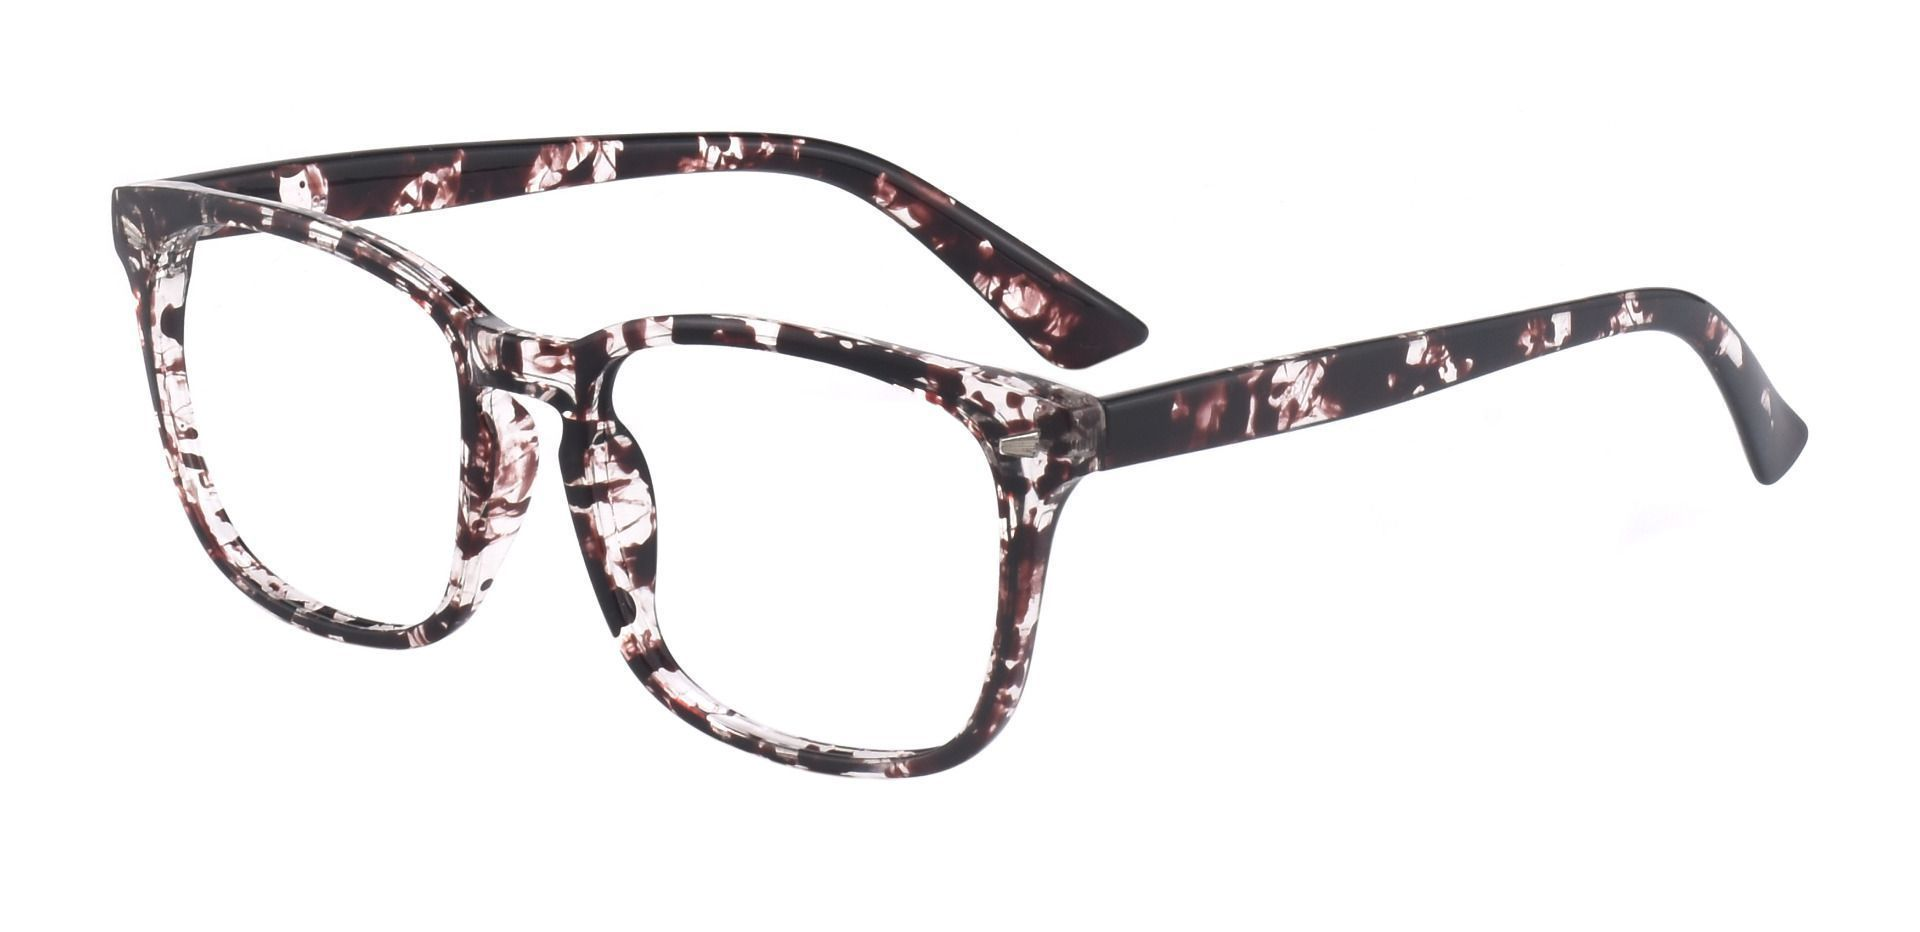 Zen Square Prescription Glasses - Two-tone